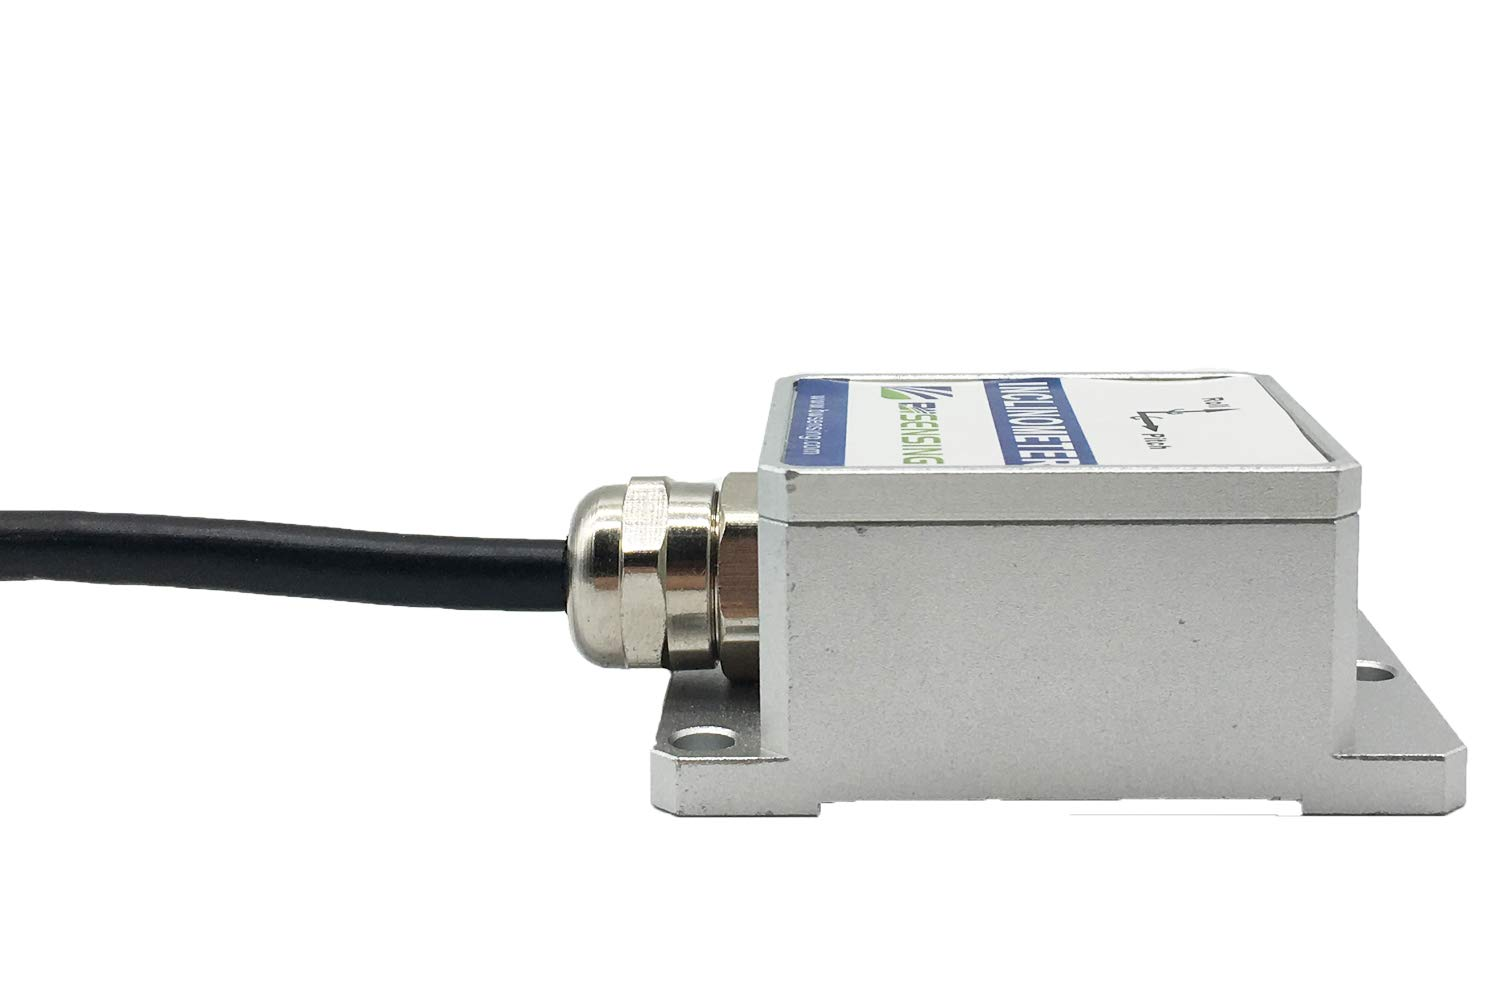 Bwsensing Tilt Sensor BWL327s Dual Axis Inclinometer with 0.01 Degree Resolution and 0.1 Degree Accuracy RS232 RS487 TTL Output with Modbus